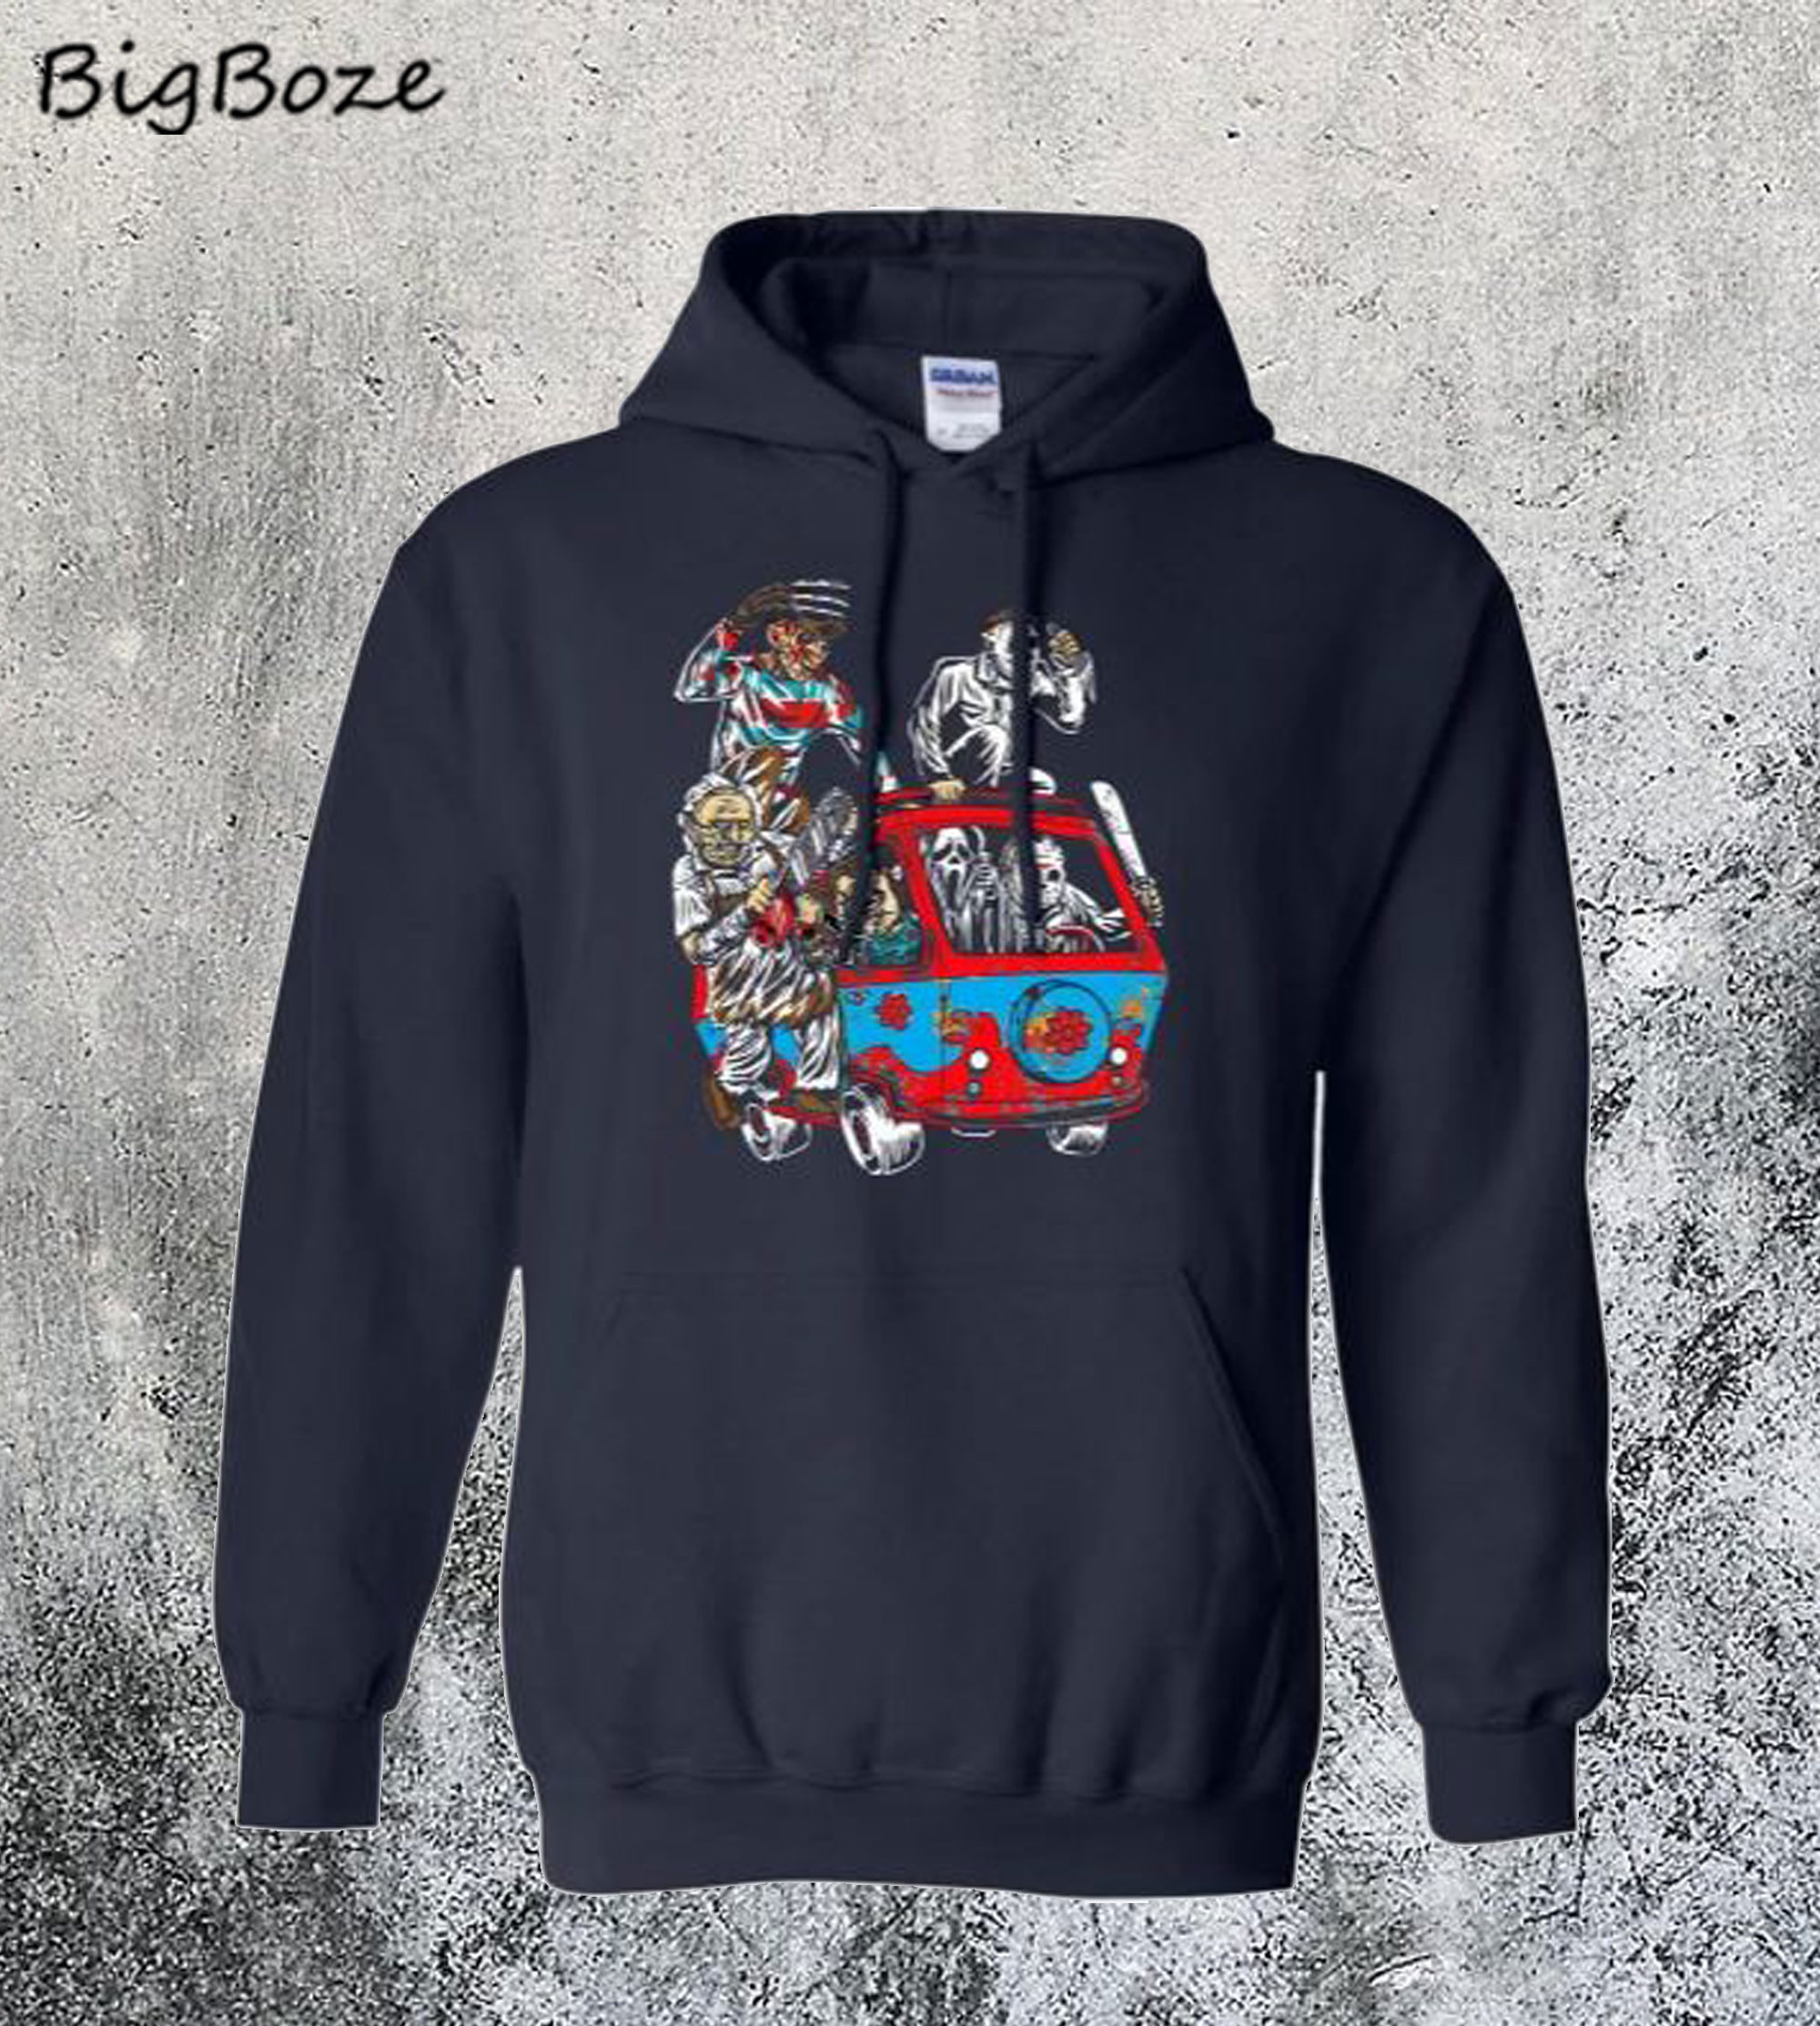 The Massacre Machine Horr Hoodie